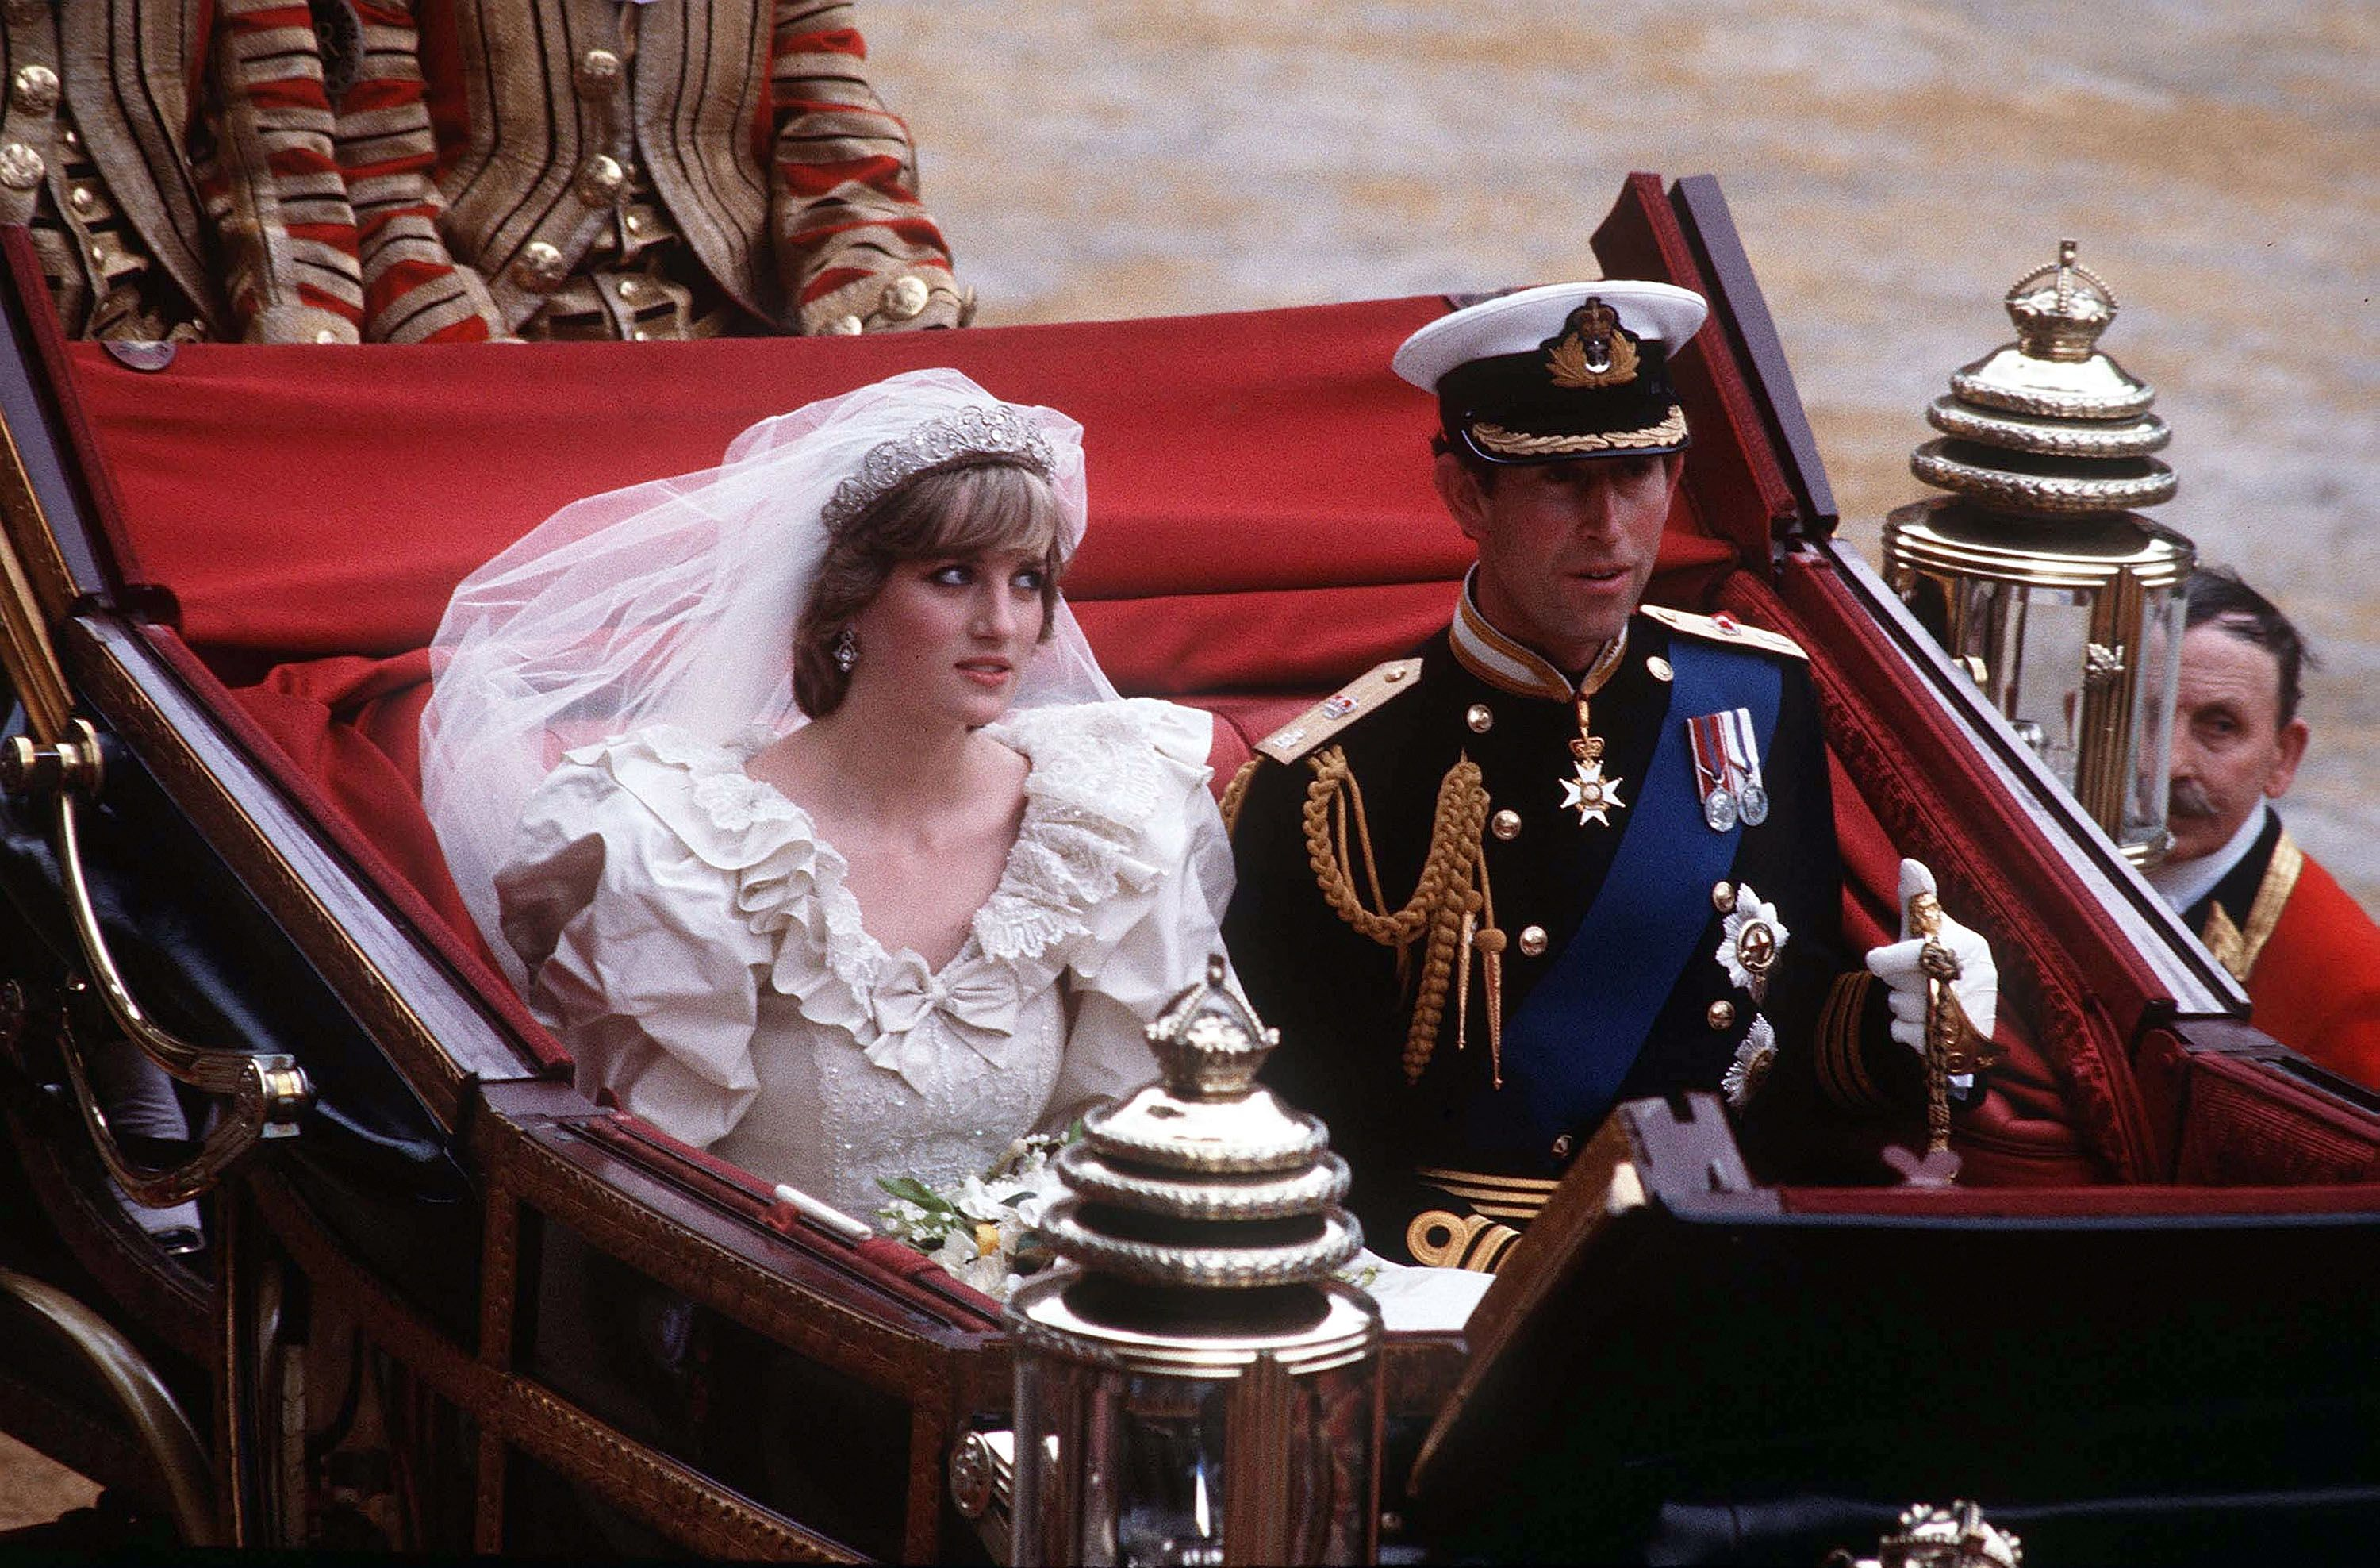 Diana, Princess of Wales and Prince Charles ride in a carriage after their wedding at St. Paul's Cathedral July 29, 1981 | Source: Getty Images